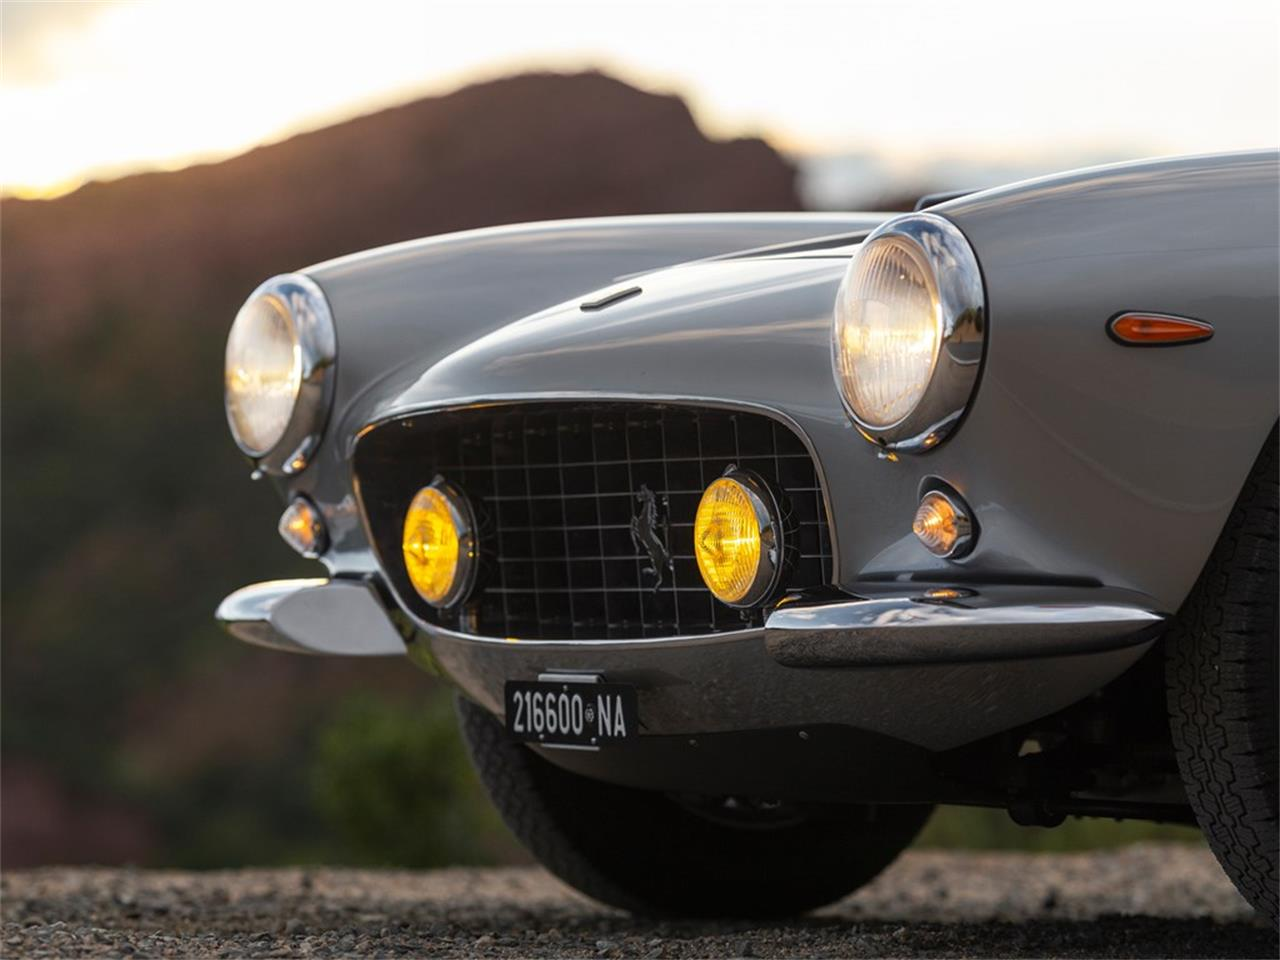 Large Picture of '62 Ferrari 250 GT located in Monterey California Auction Vehicle Offered by RM Sotheby's - Q2TS